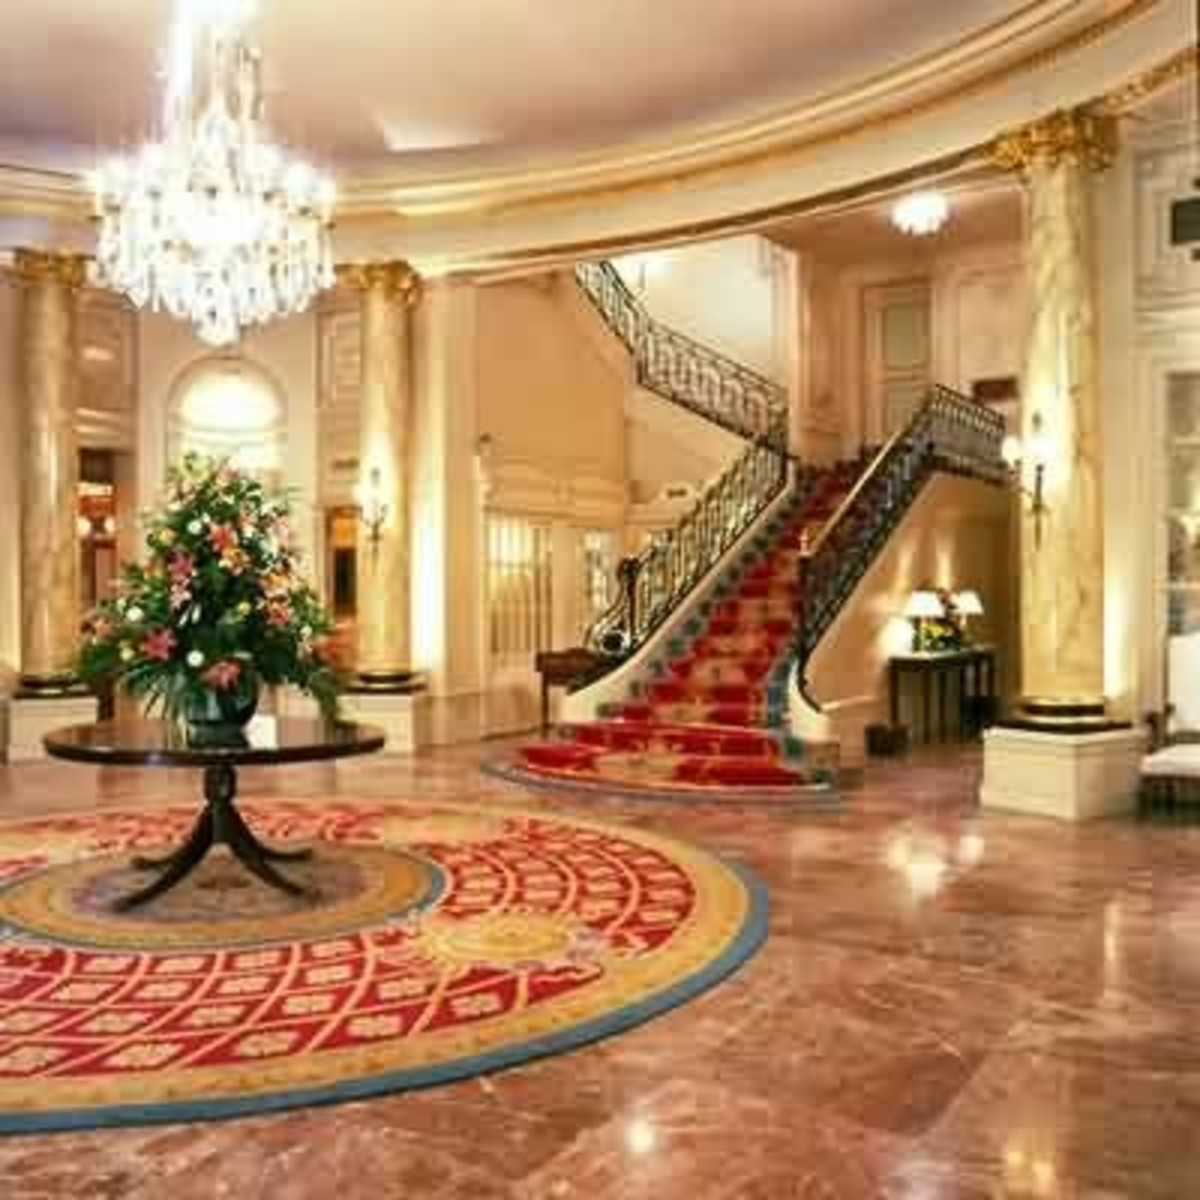 Main lobby at the Ritz.  Credit: www.whatahotel.com